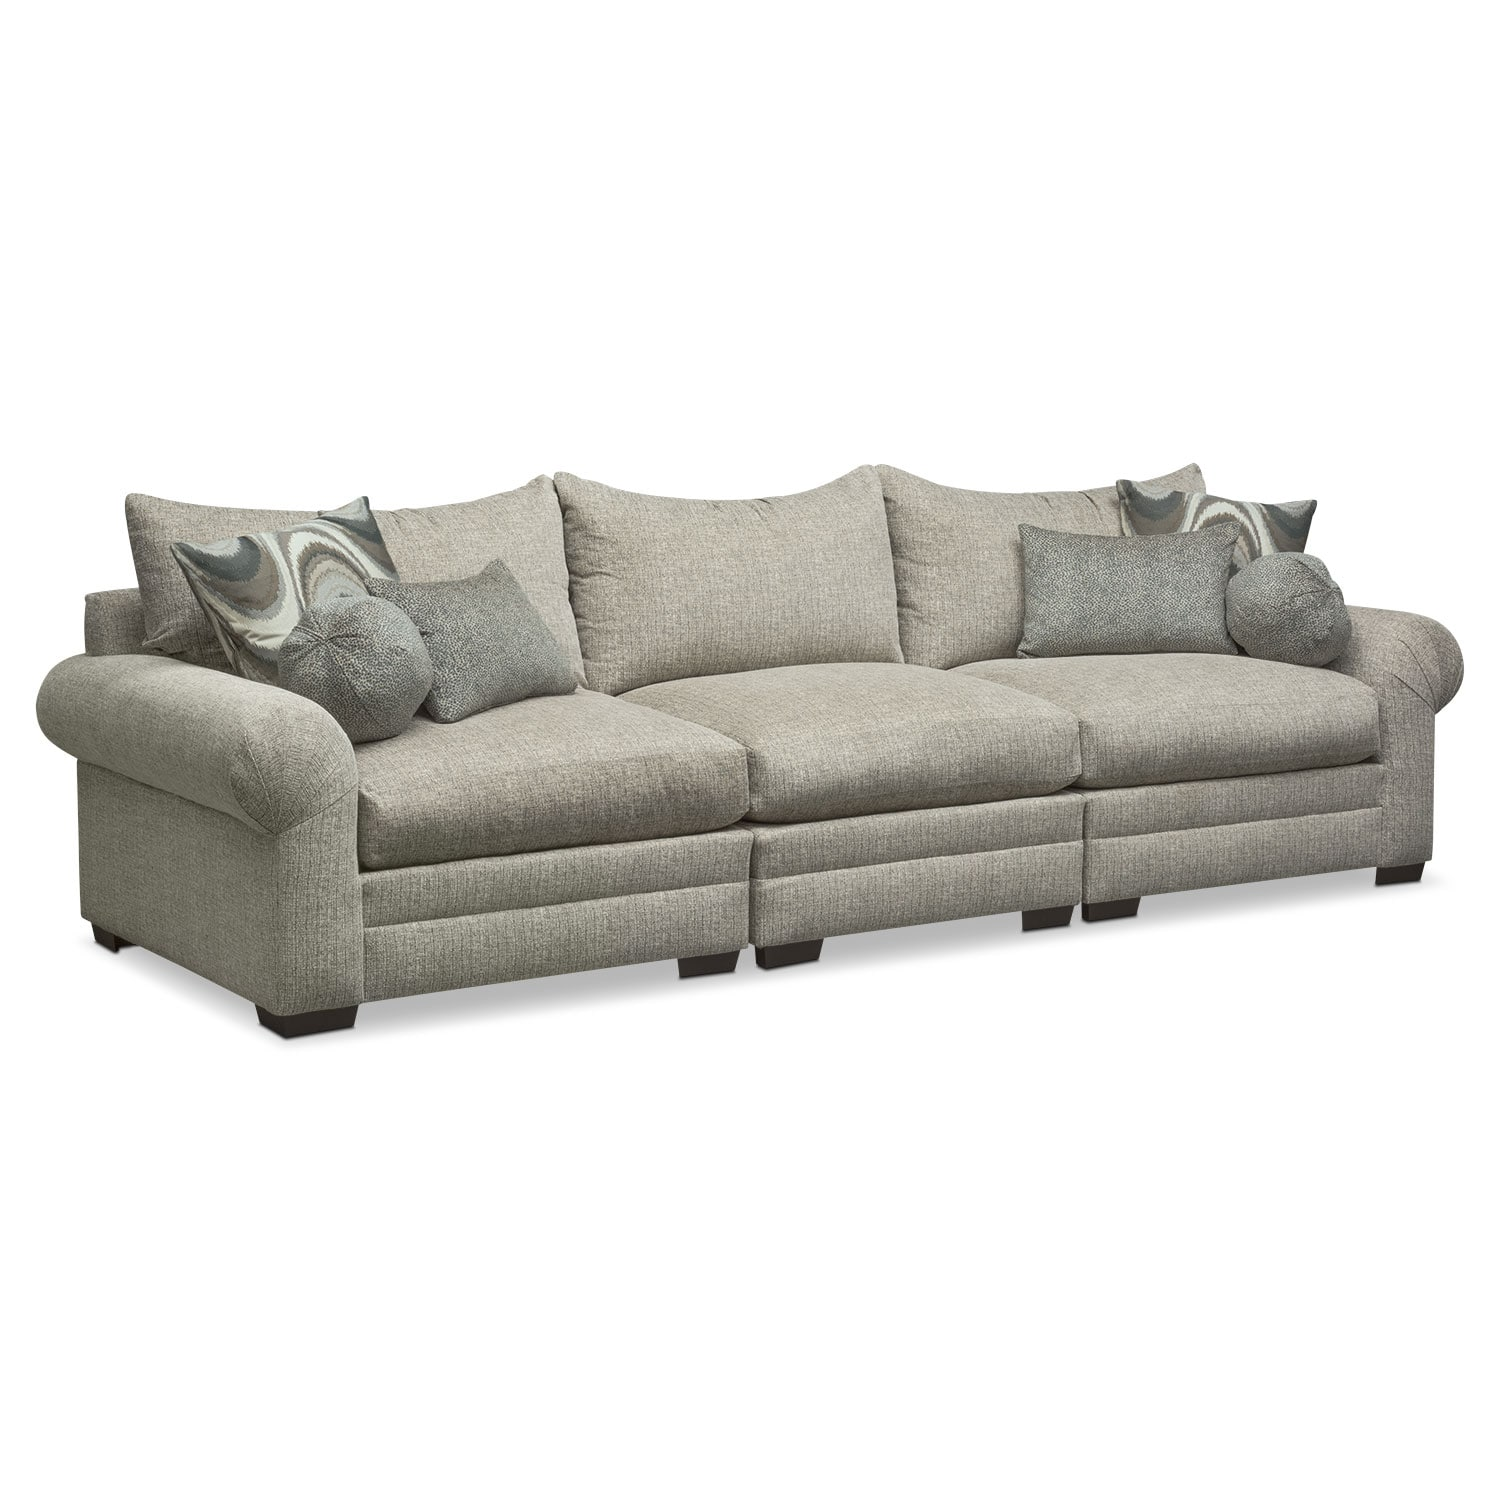 Living Room Furniture - Wilshire 3-Piece Sectional - Gray